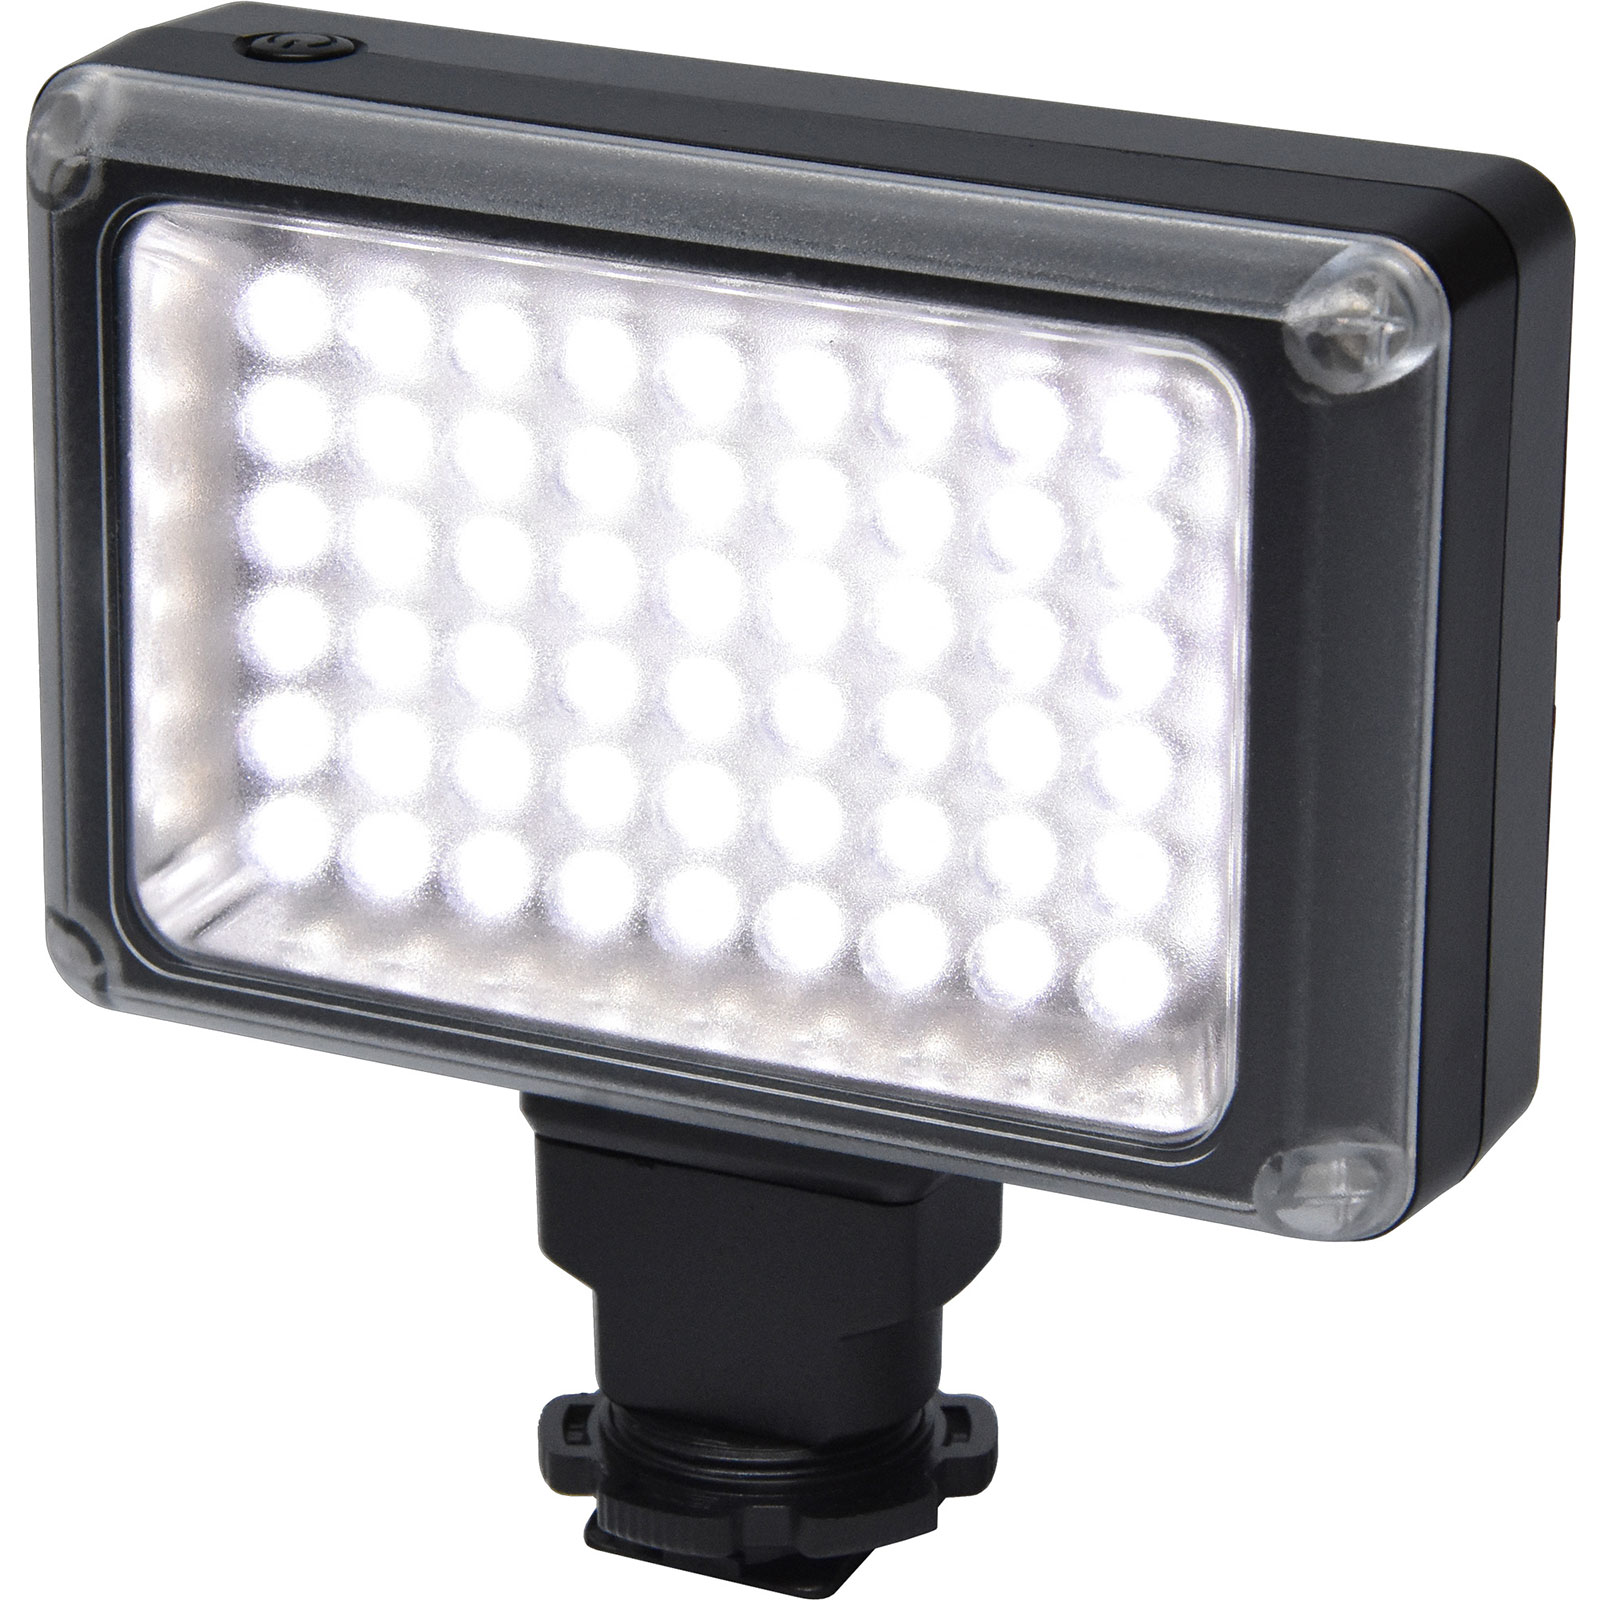 Precision Design Micro LED Video Light + Flash with 2 Diffusers + Bracket